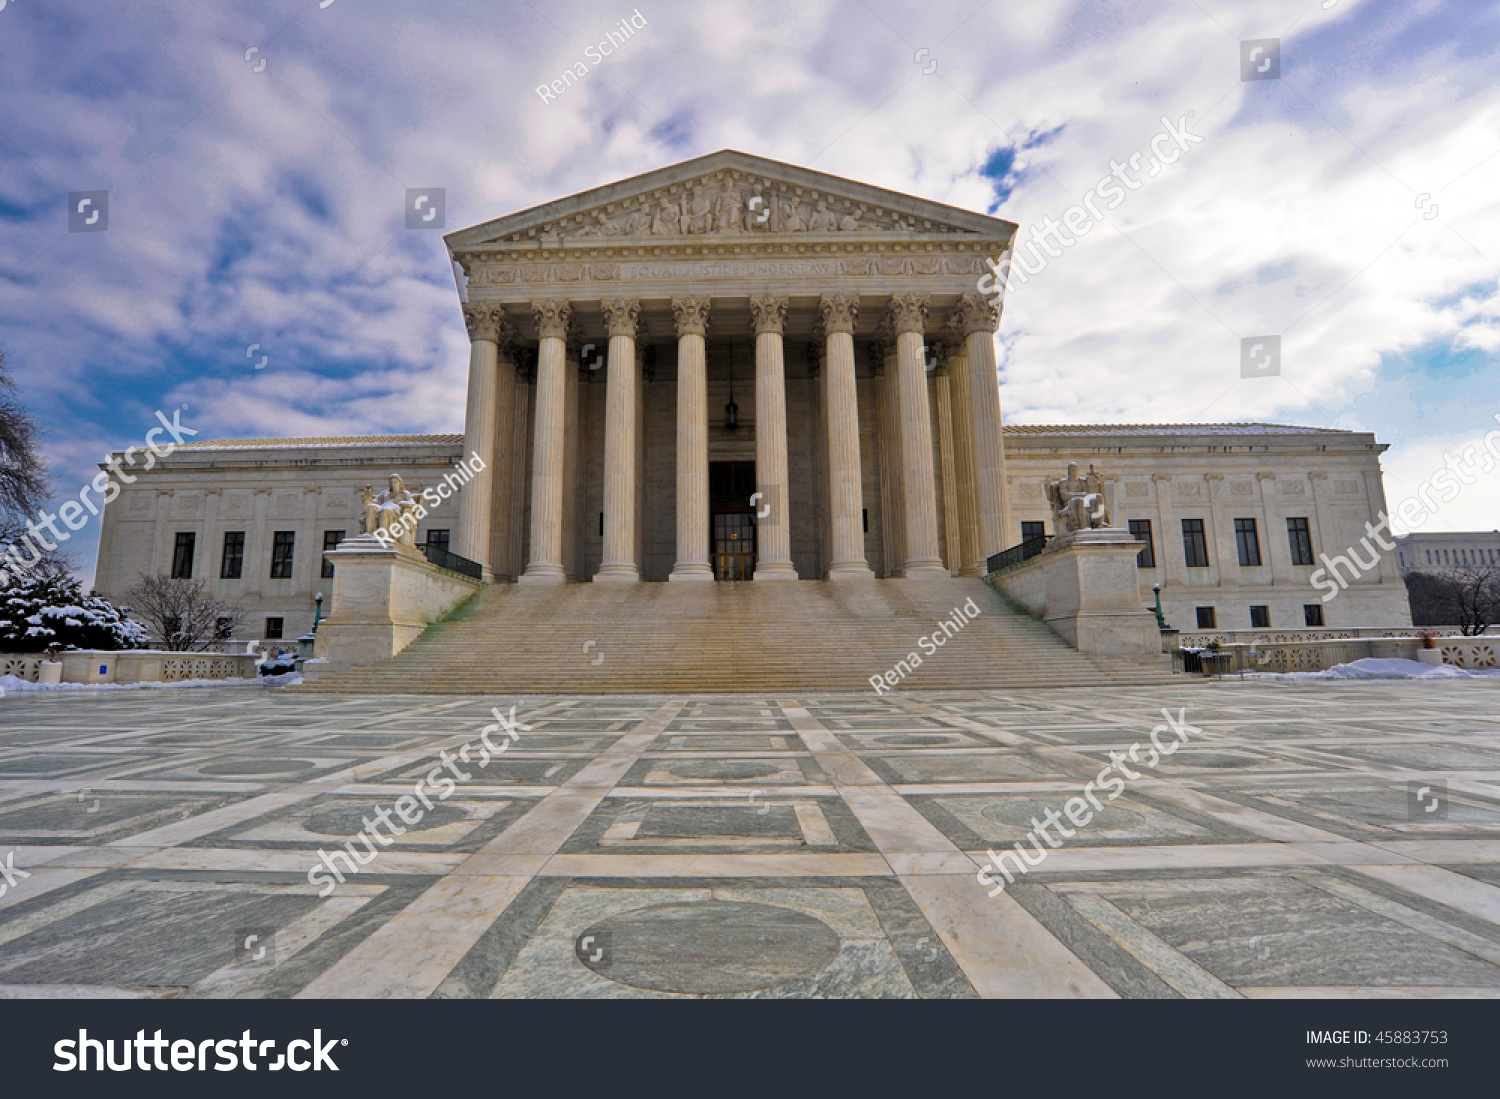 supreme court cases thematic essay Thematic essay review the thematic essay portion is the hardest part of the test  task: select two supreme court cases that have affected american society.